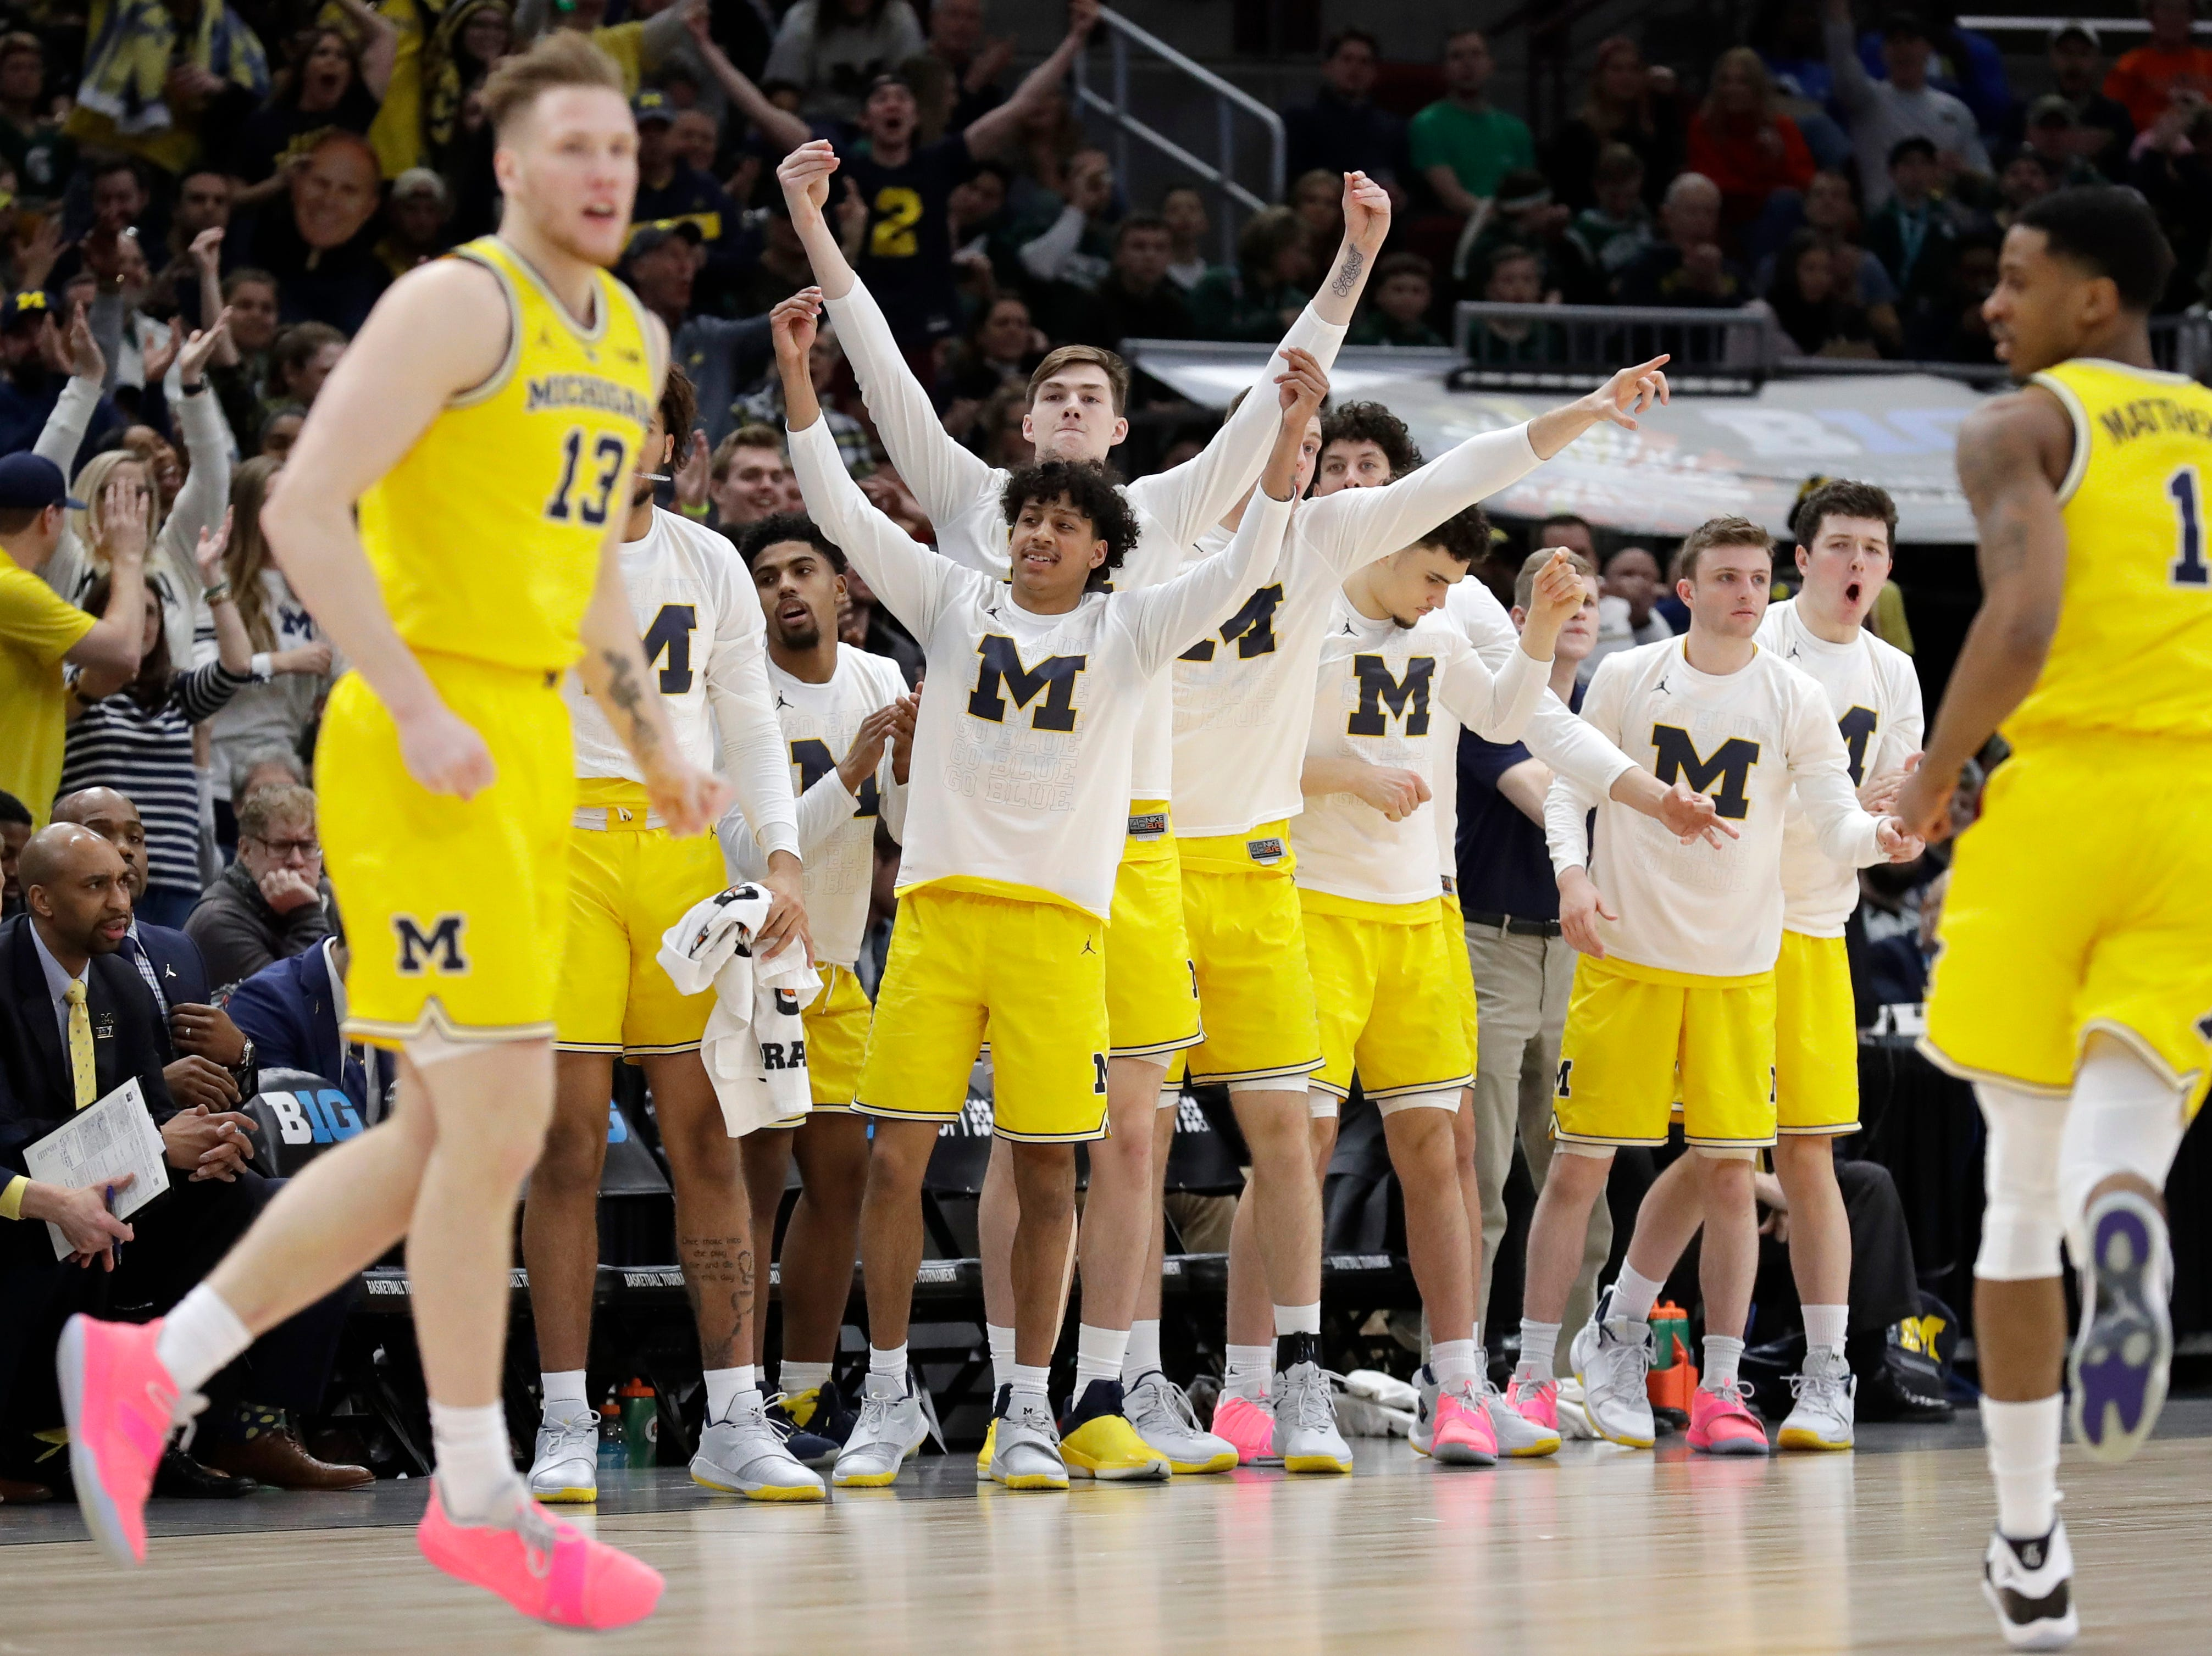 Michigan bench celebrate after Ignas Brazdeikis (13) shoots a 3-point basket during the first half of an NCAA college basketball championship game in the Big Ten Conference tournament, Sunday, March 17, 2019, in Chicago.